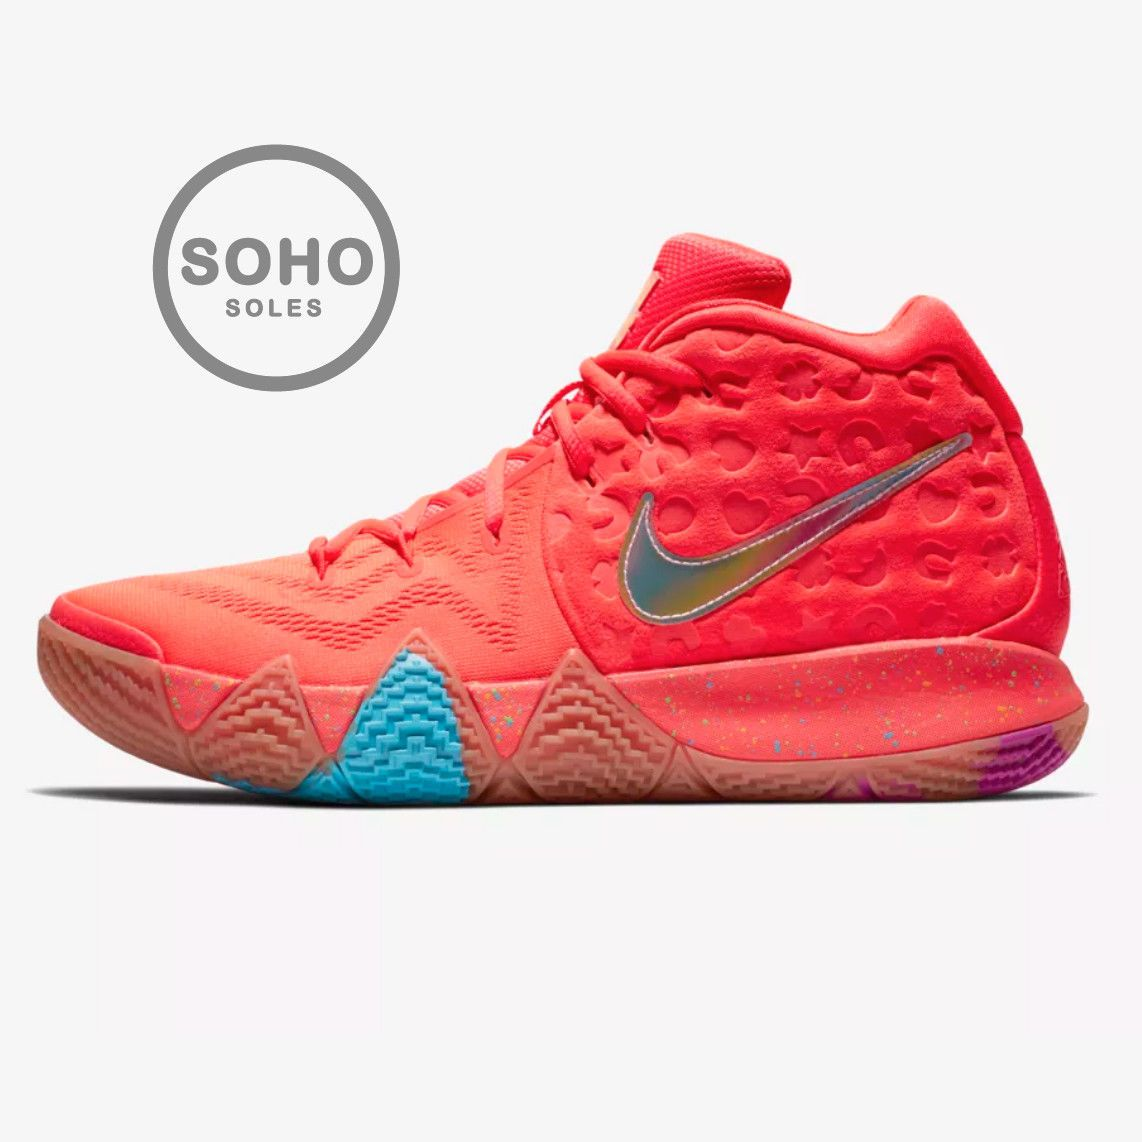 5049bcdb1d5 Details about Kyrie 4 Lucky Charms Cereal Pack Men   GS Size 4-15 ...